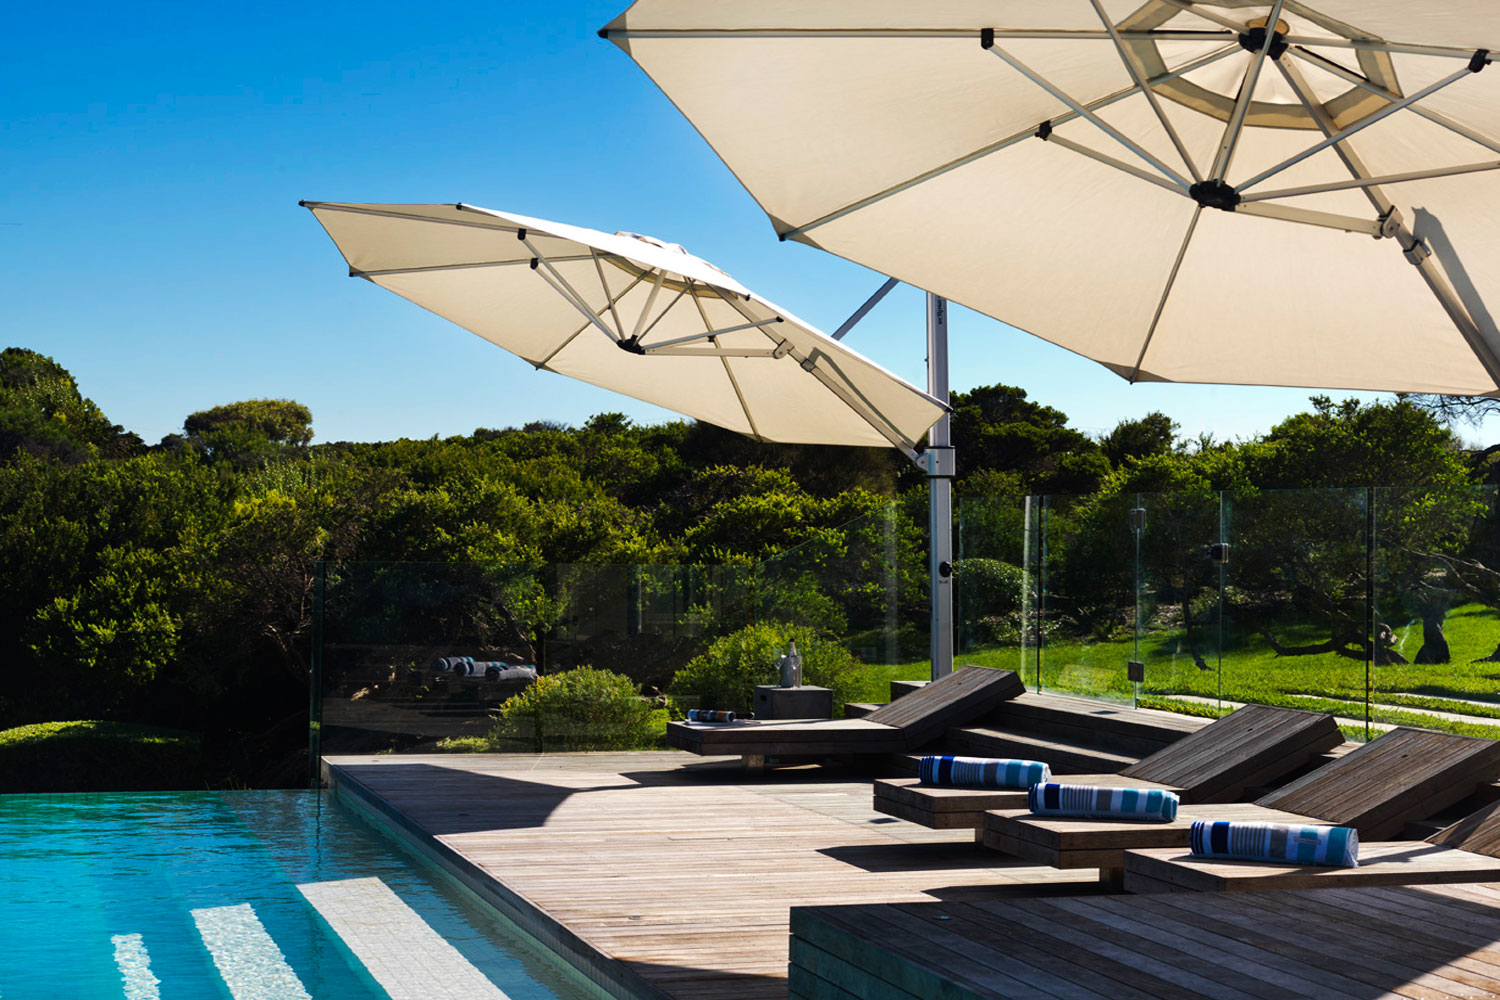 CANTILEVER UMBRELLAS AND OUTDOOR